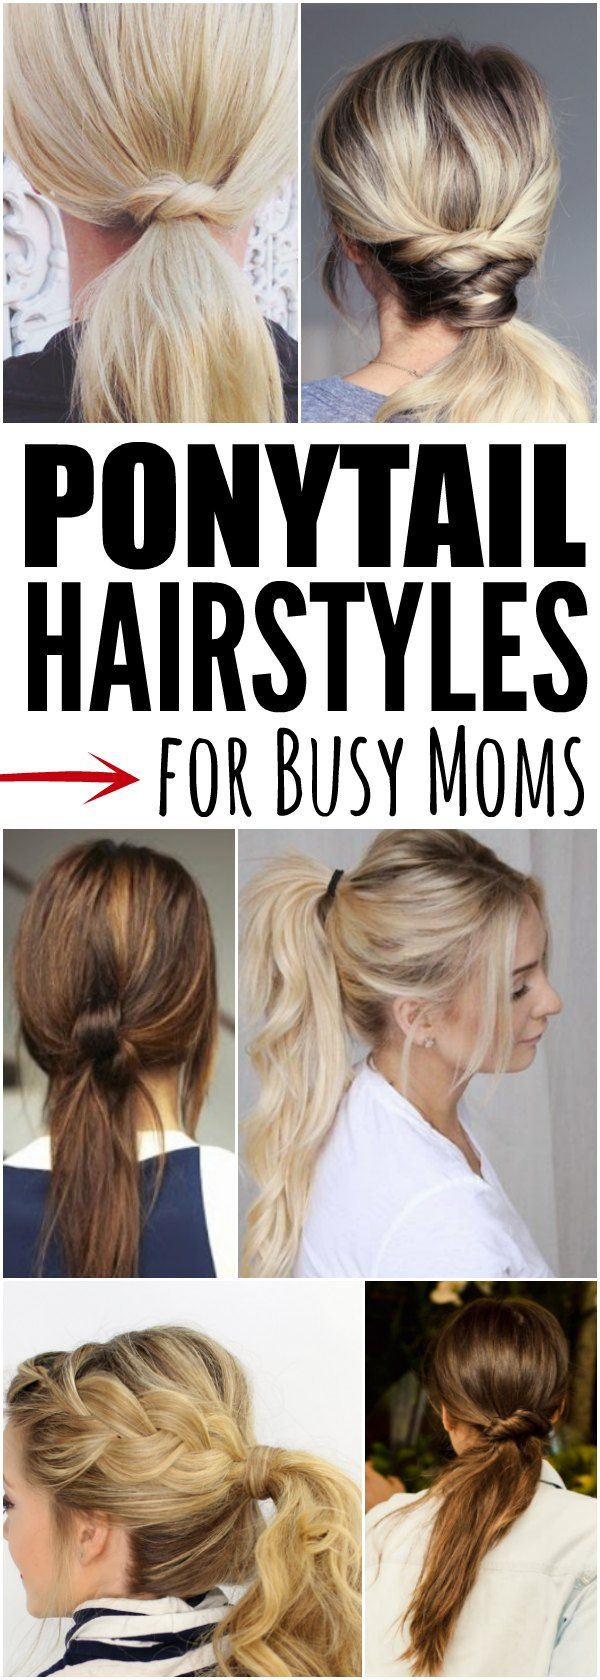 Here are 25 quick and easy Ponytail Hairstyles for Busy Moms. Look fabulous with these simple Ponytail Hairstyles for Moms.